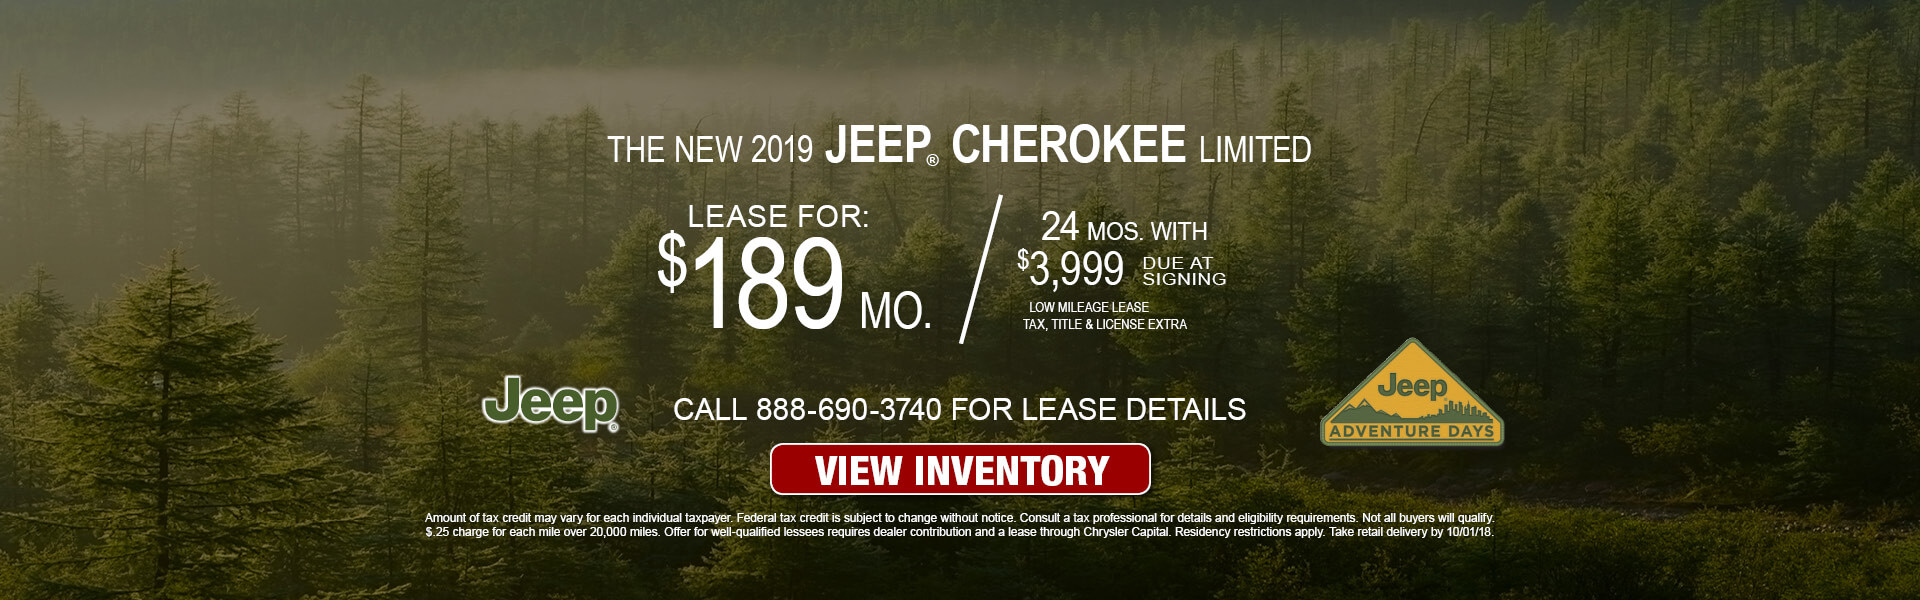 Jeep Cherokee Limited $189 Lease